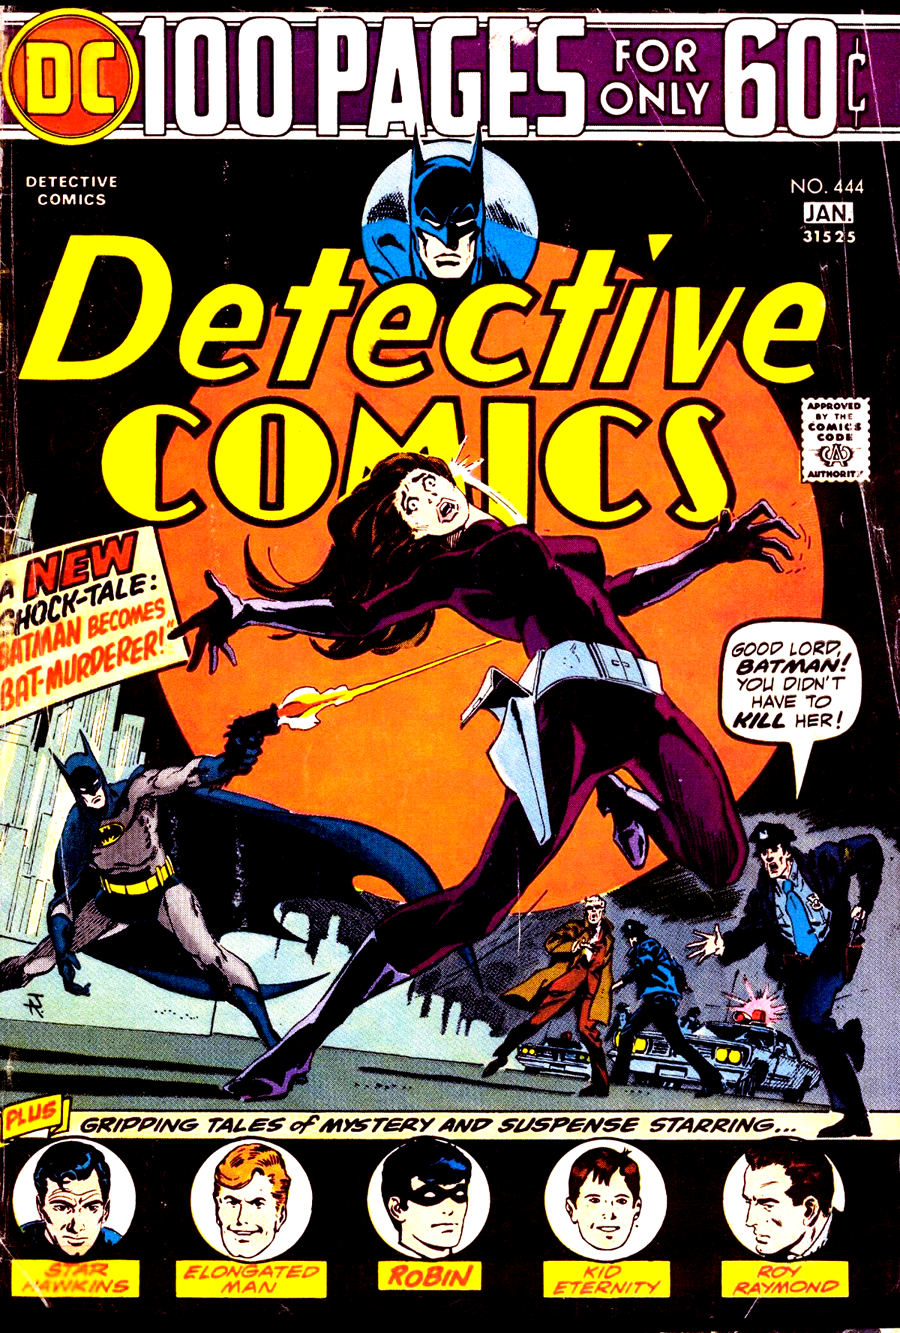 Detective Comics #444 cover by Jim Aparo